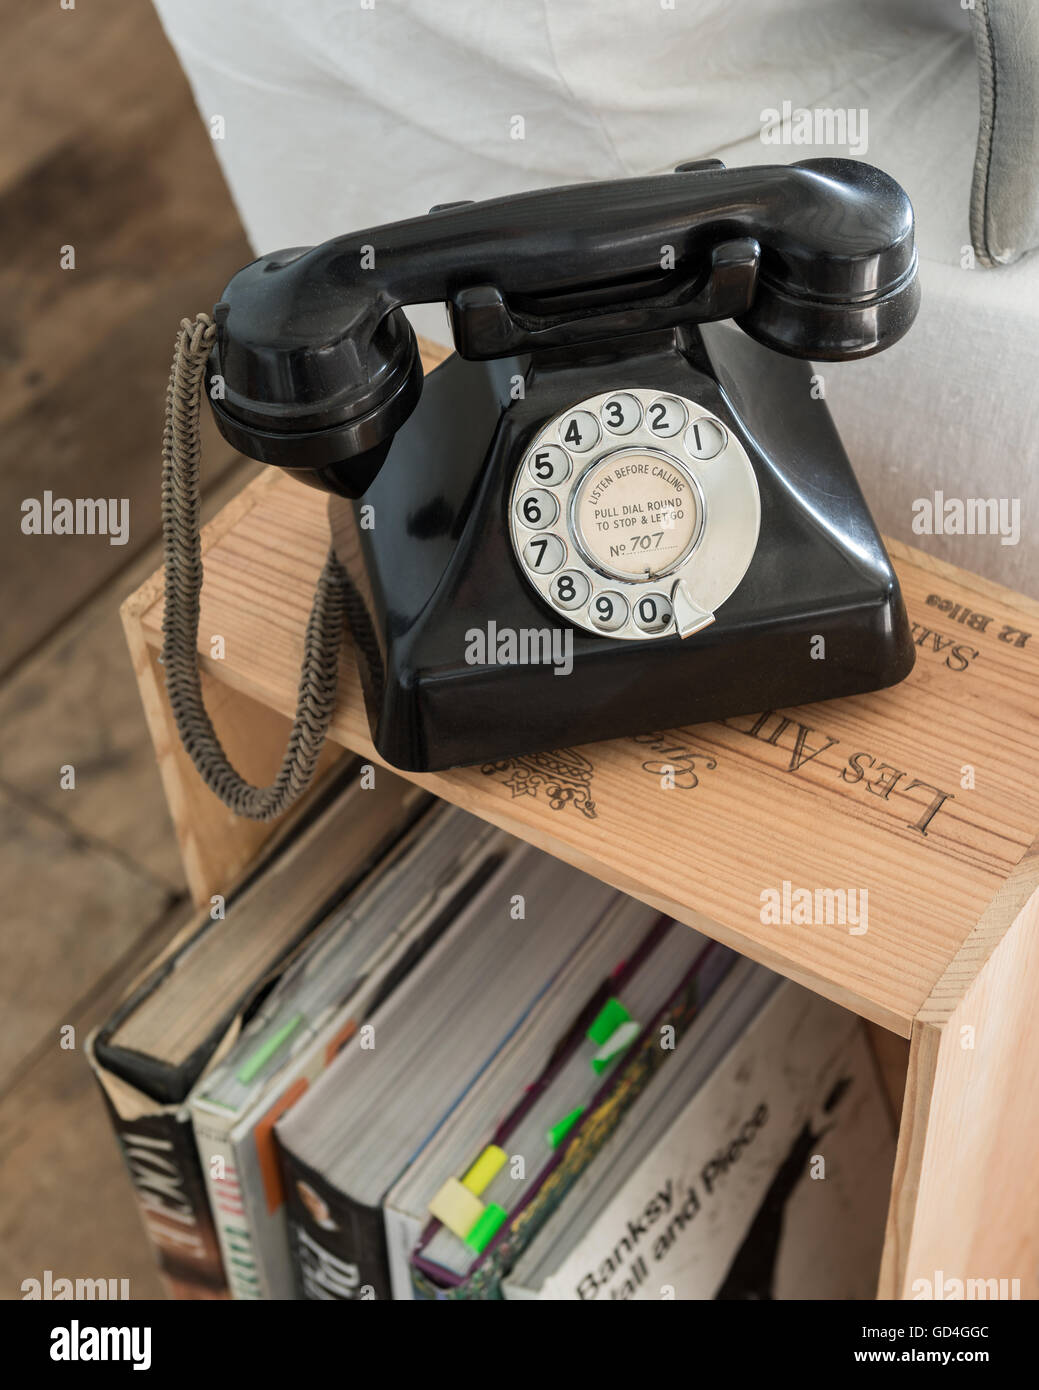 Bakelite telephone on wine crate used as side table - Stock Image